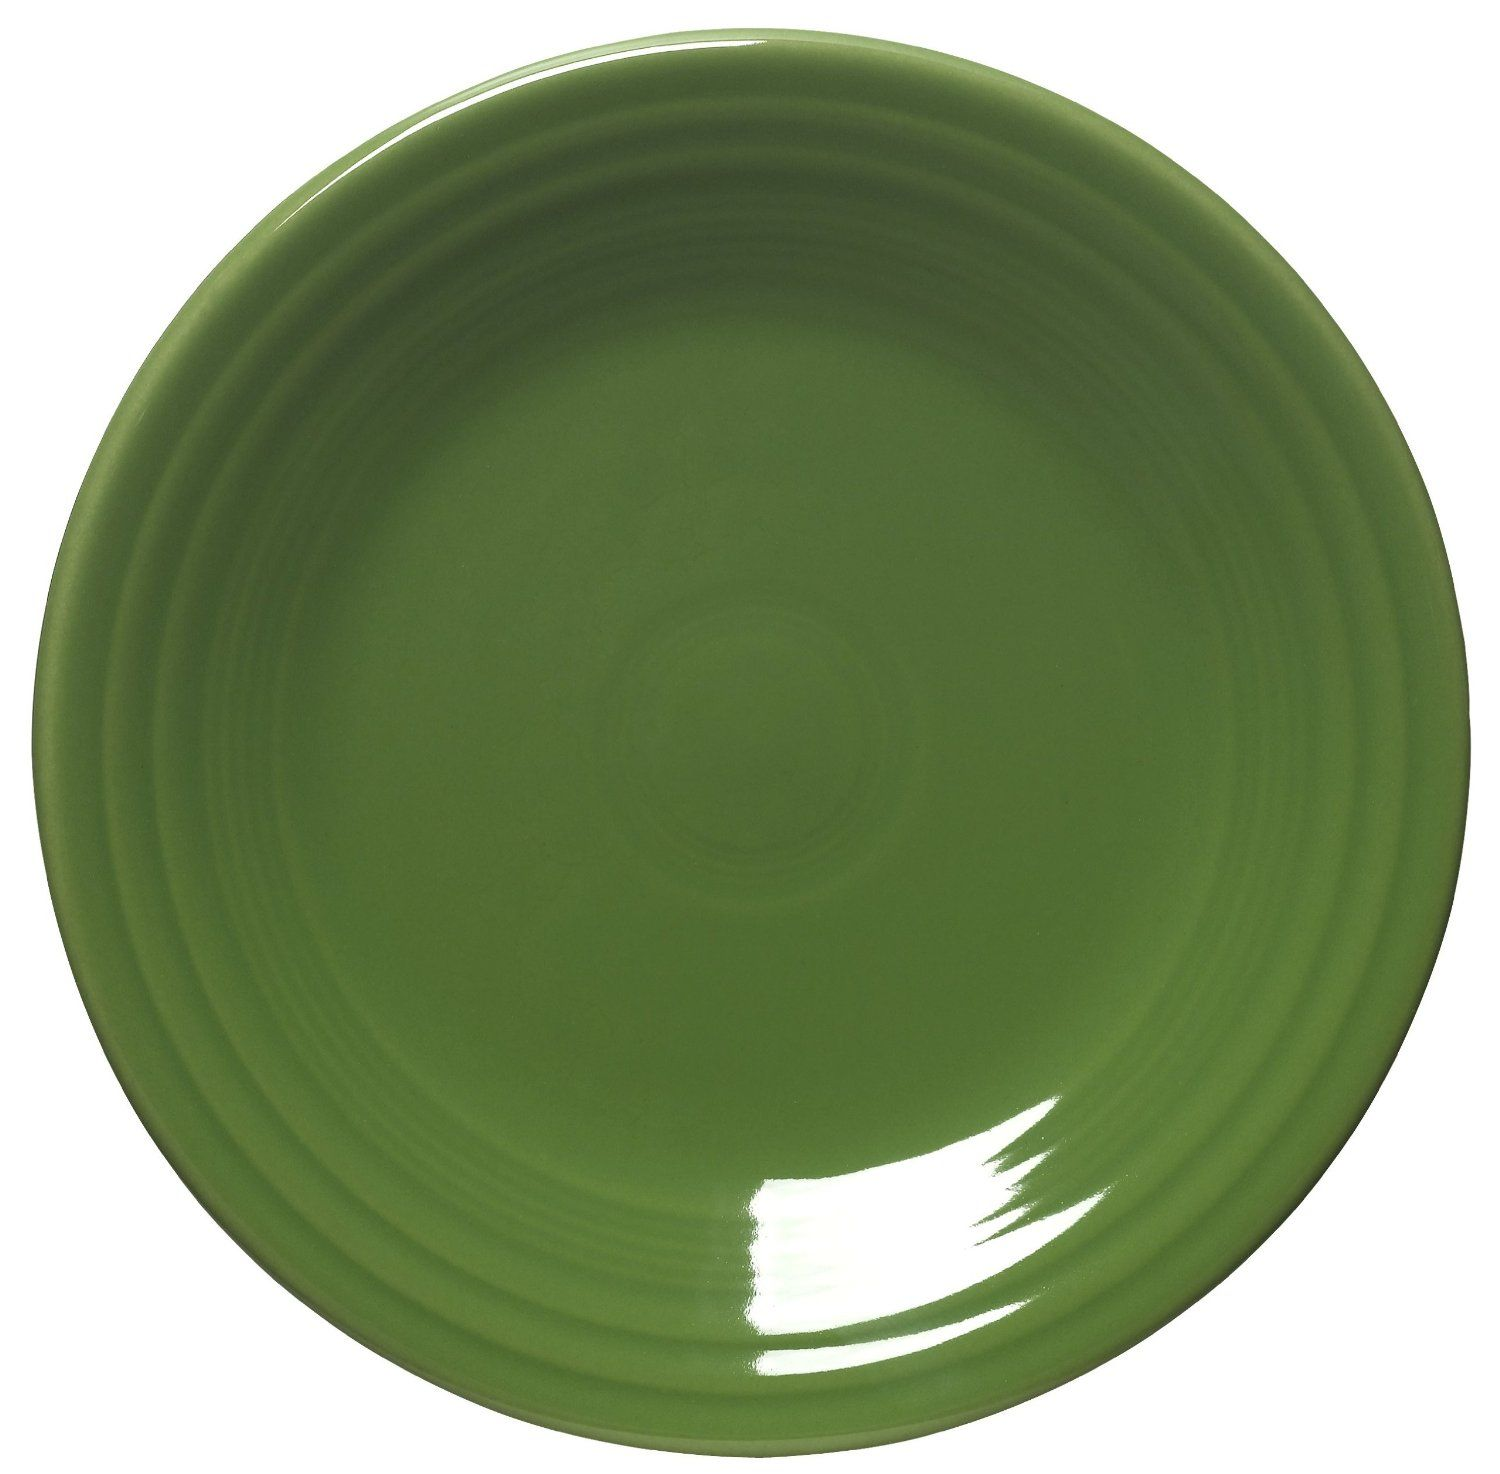 Fiesta 9-Inch Luncheon Plate, Shamrock: Amazon.com: Kitchen & Dining